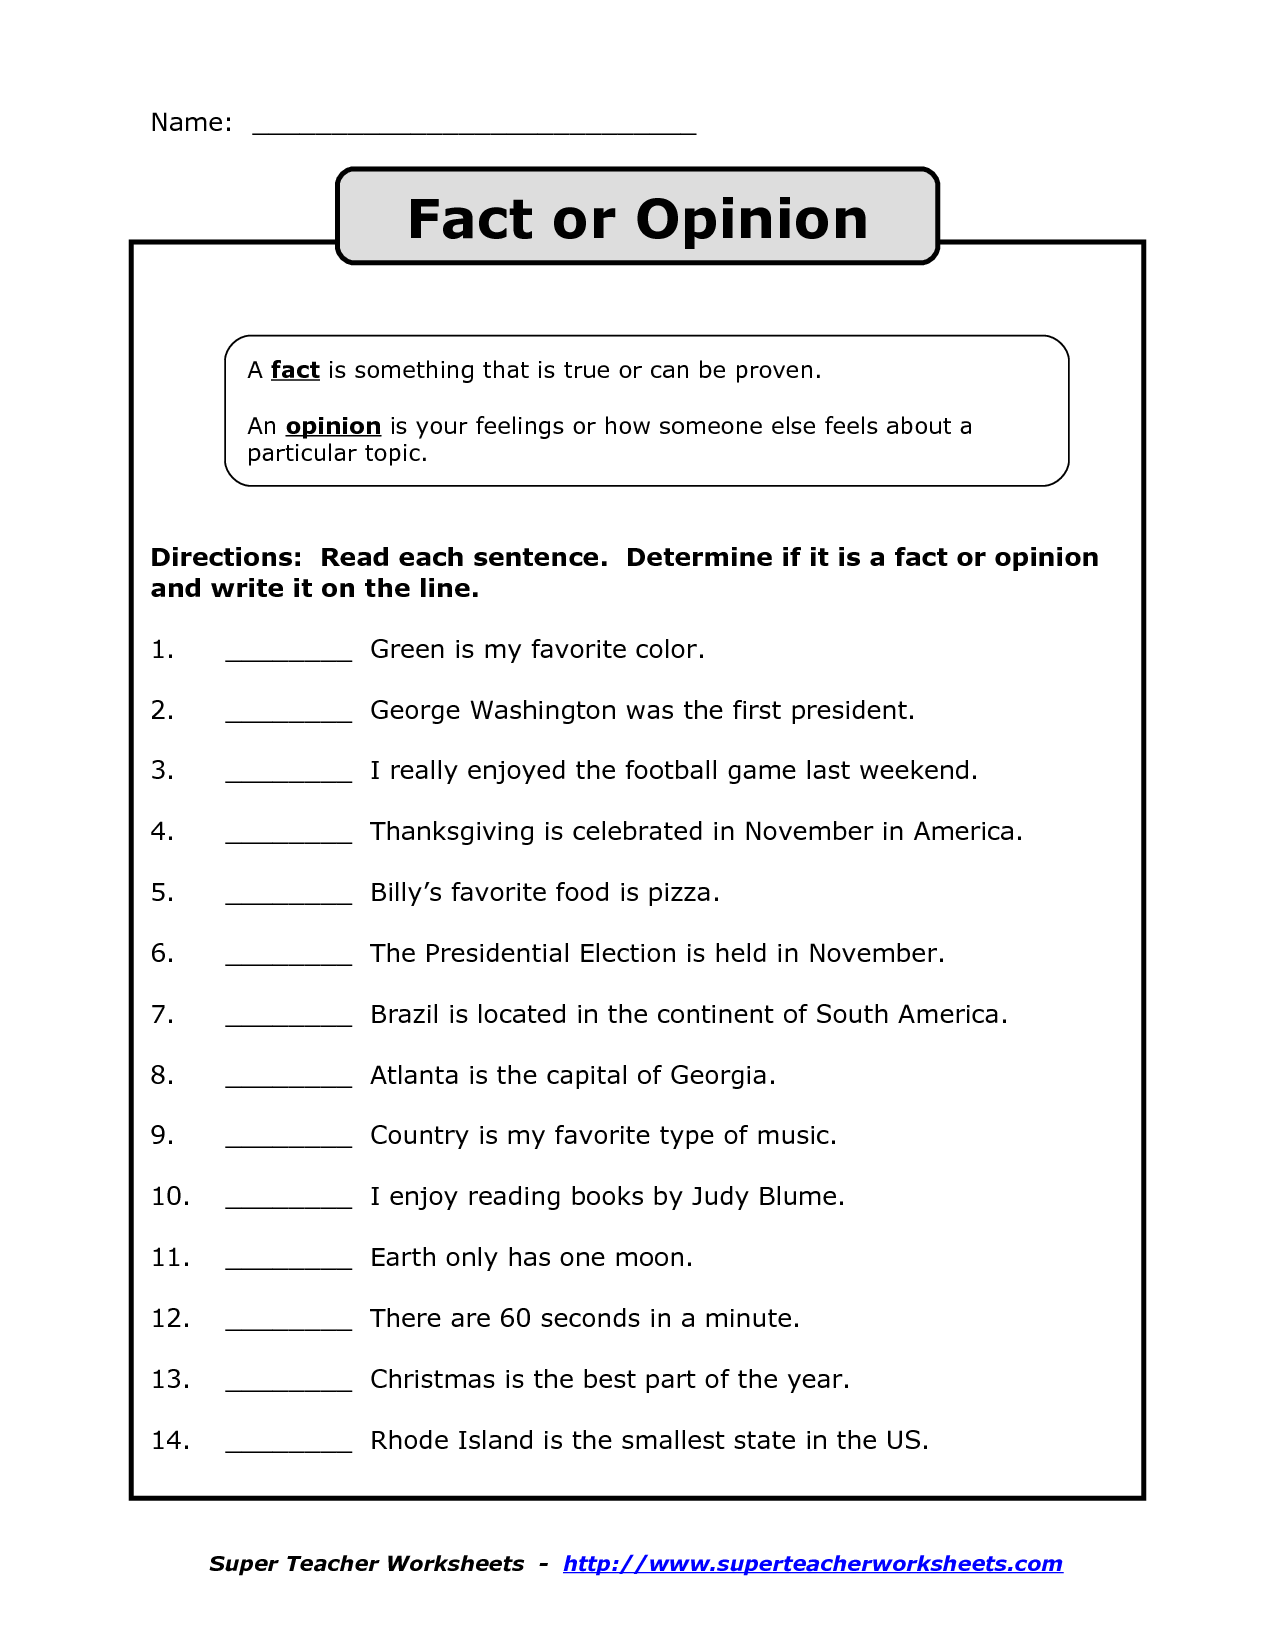 fact vs opinion worksheet Google Search – Fact or Opinion Worksheet